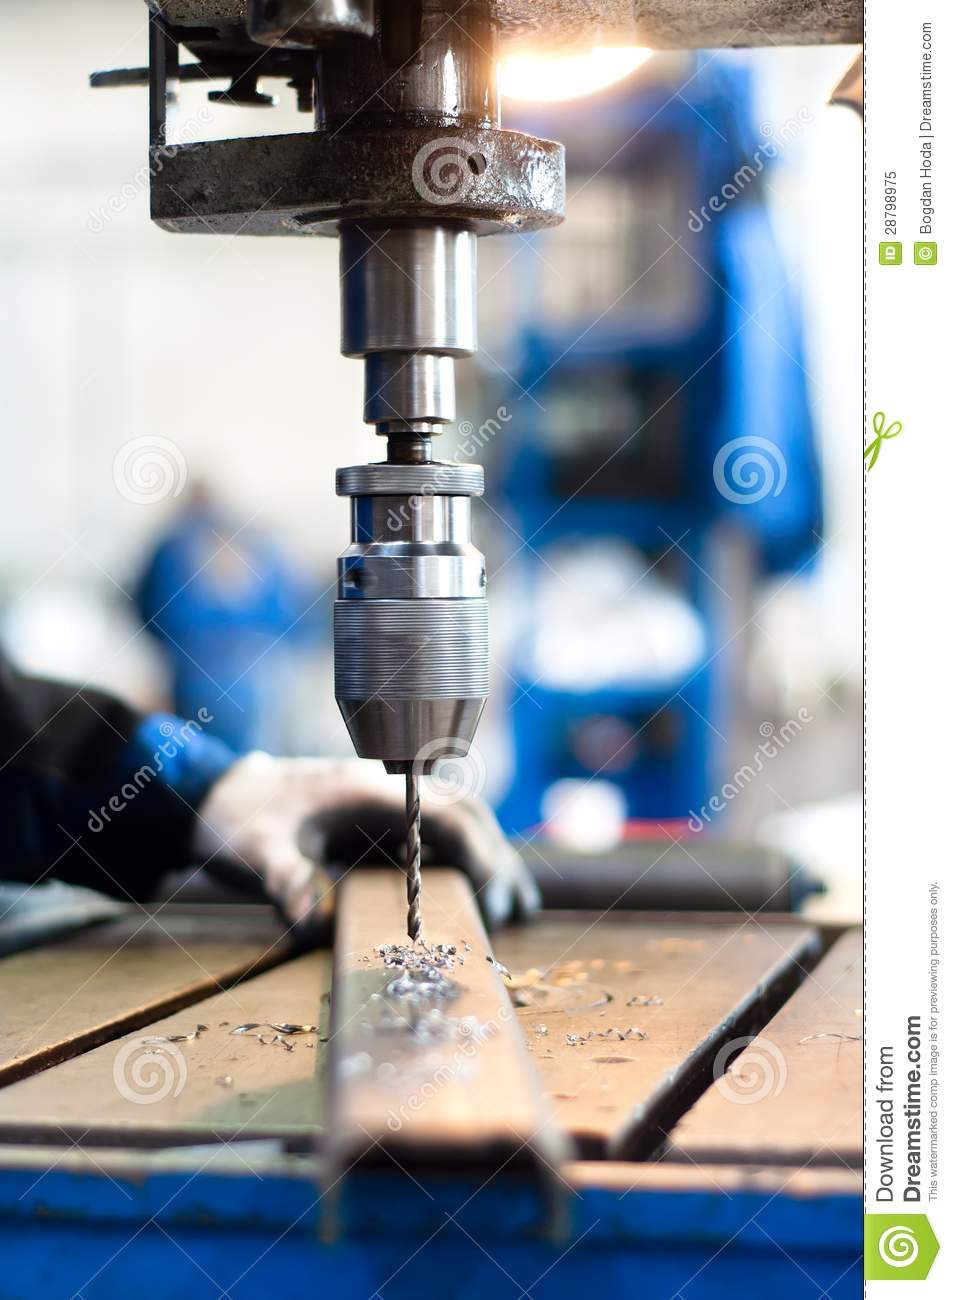 Industrial worker using a mechanical drill machine